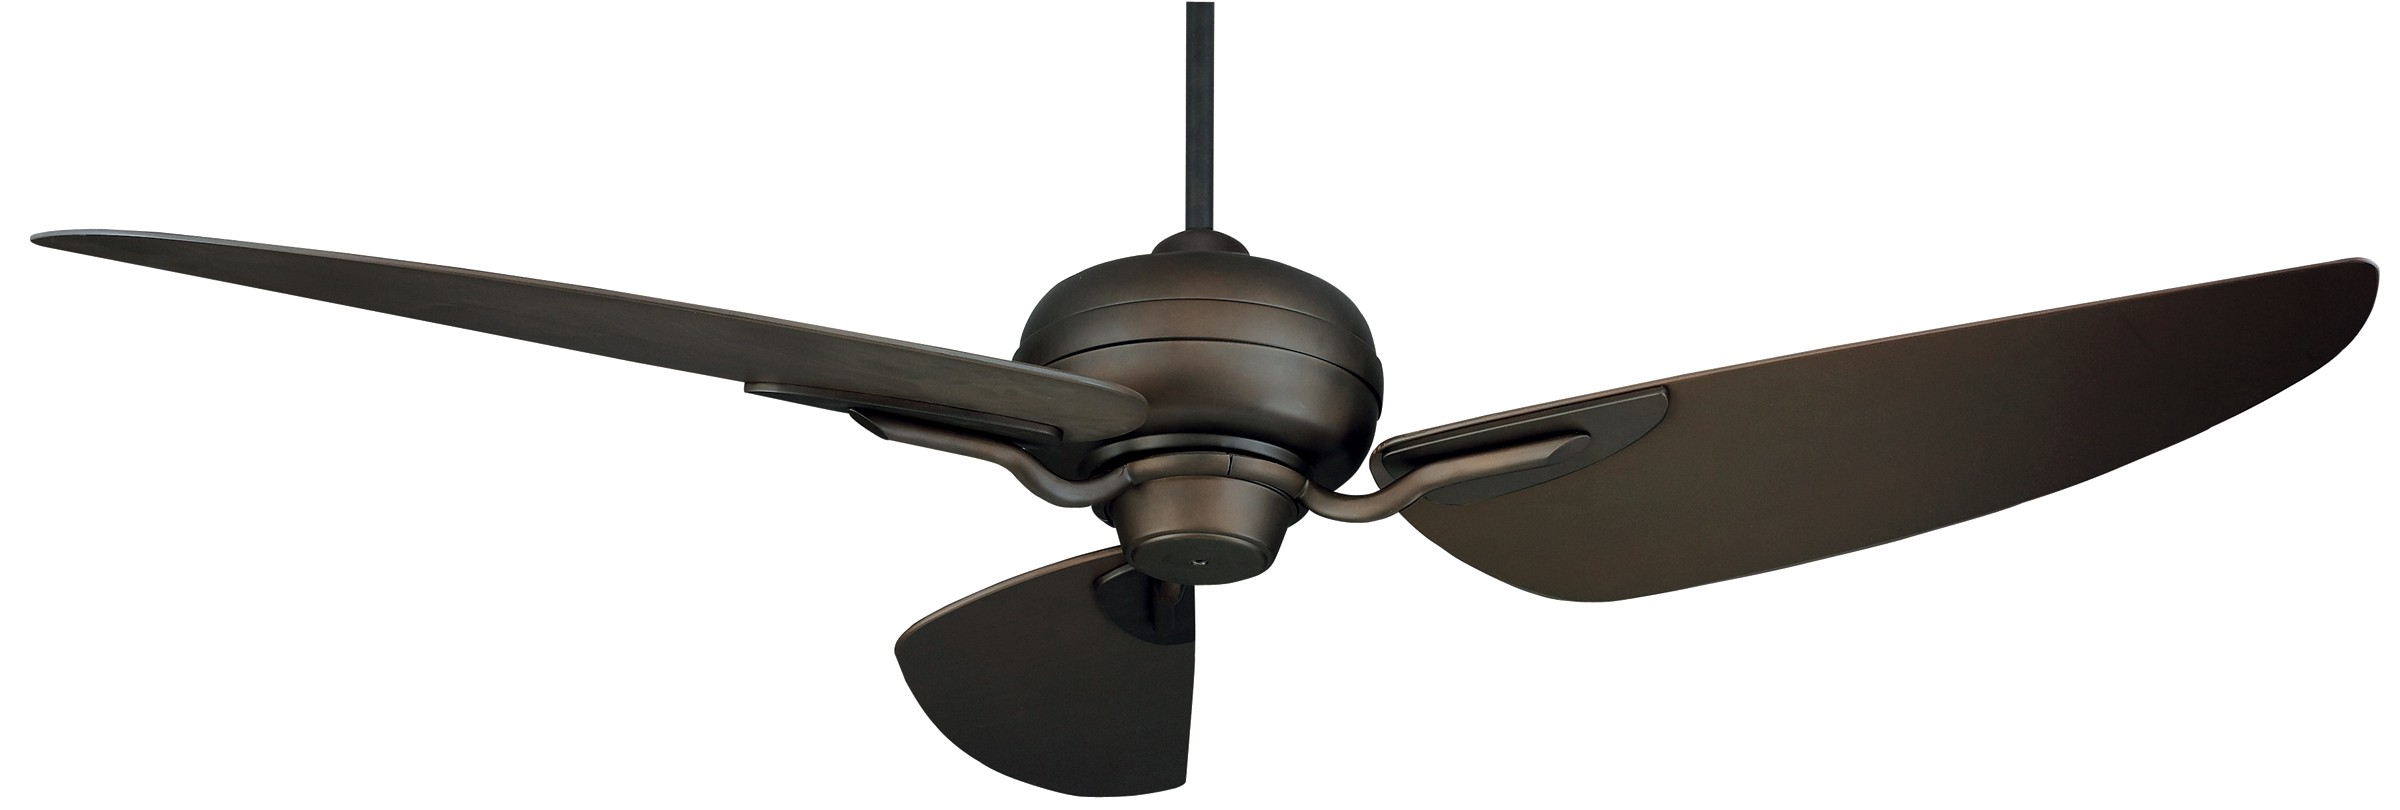 Outdoor Modern Fans Regency Fans Lucent Lighting Inc Lucent Lighting Inc